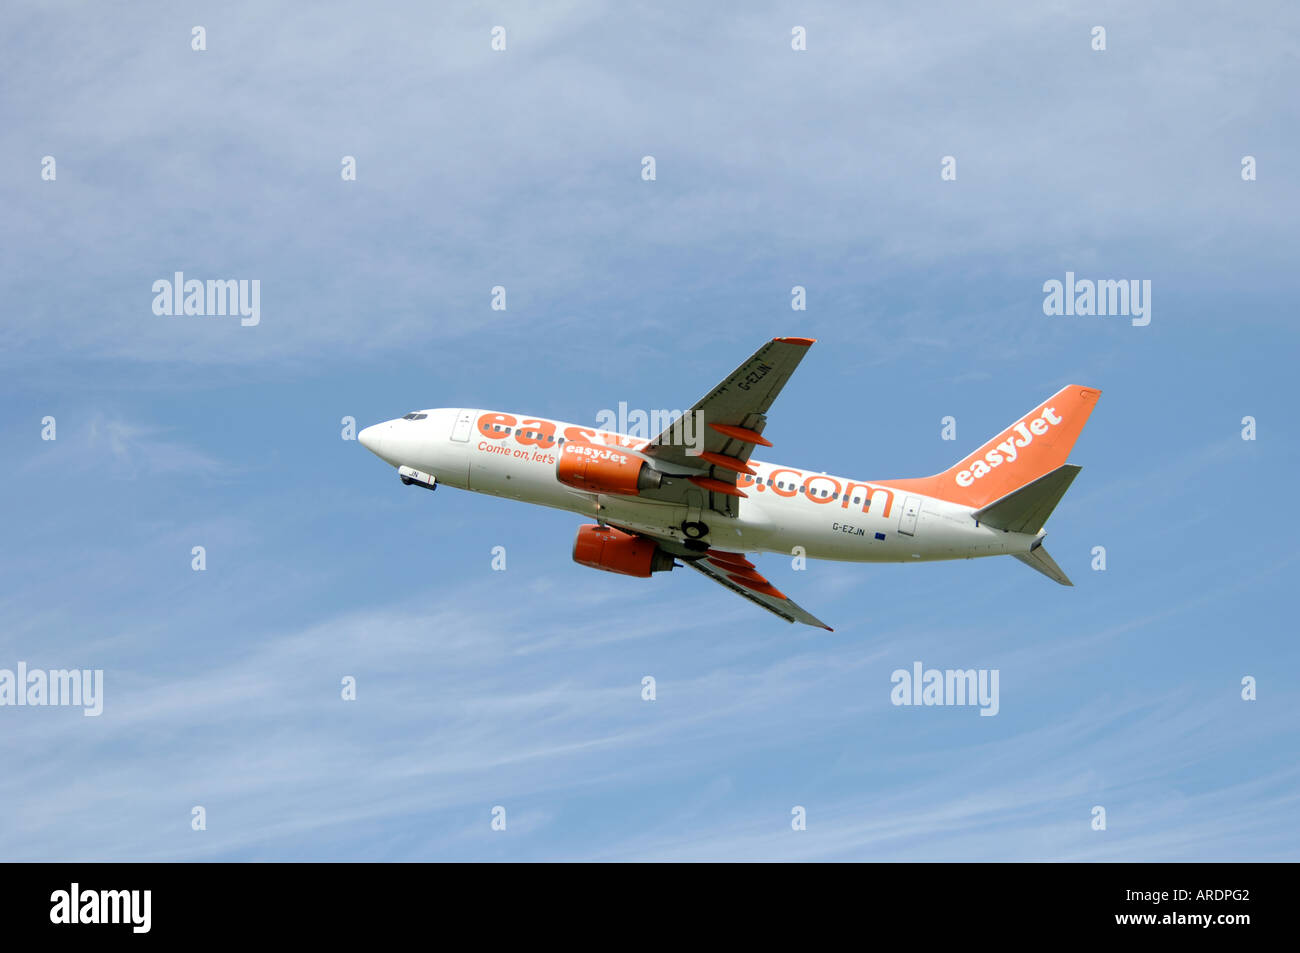 Easy Jet 737-700 Departing Inverness Airport for London.  XAV 3663-354 - Stock Image